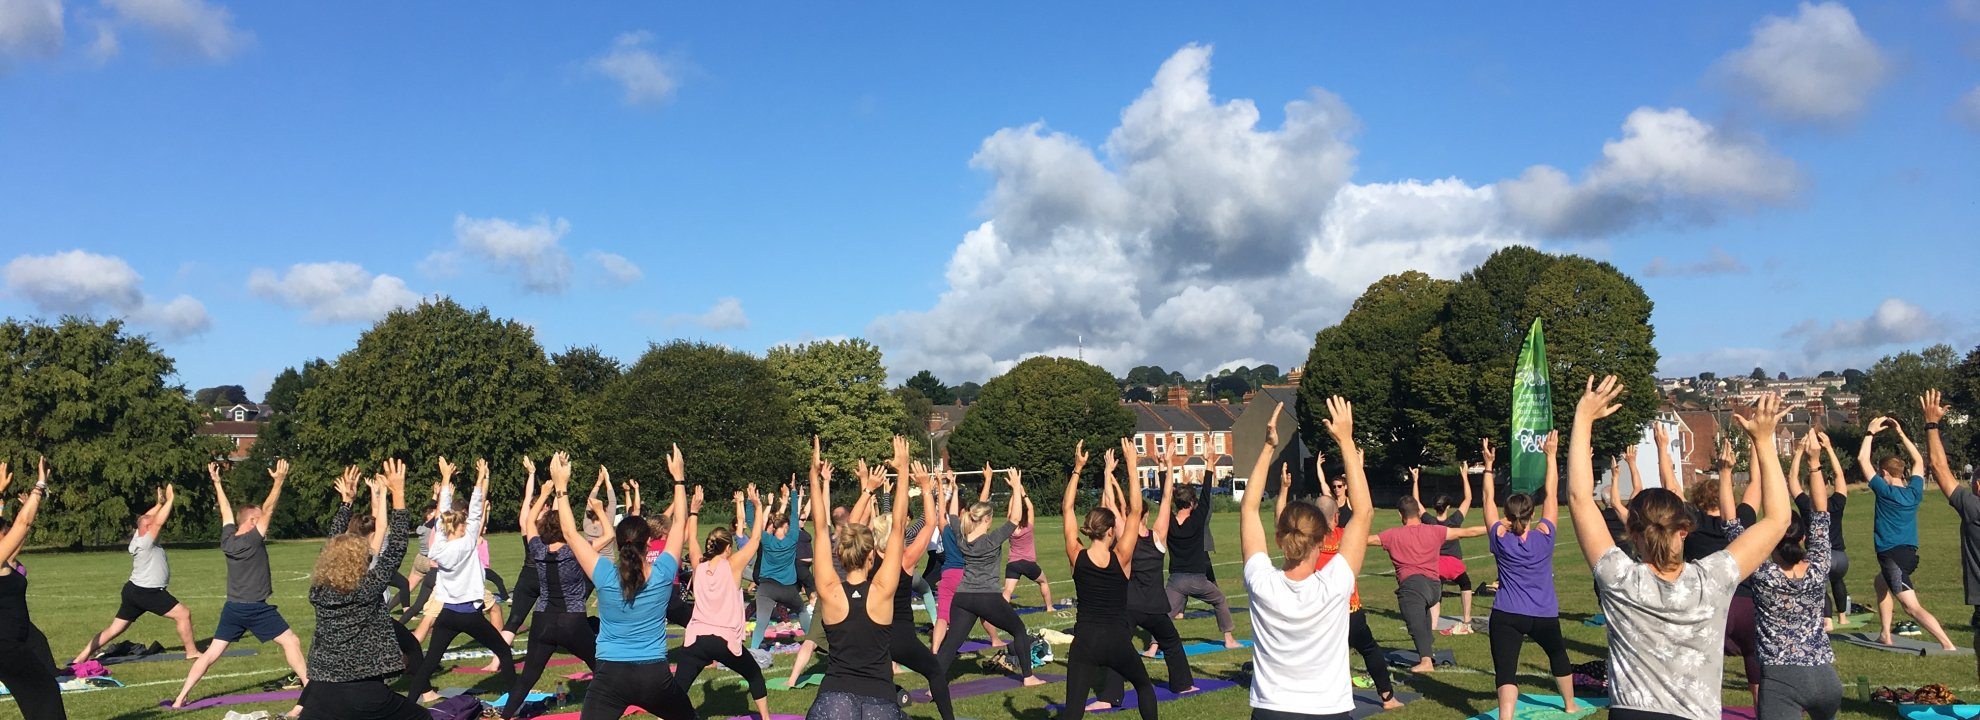 Yoga at Southmead Primary School Field Banner